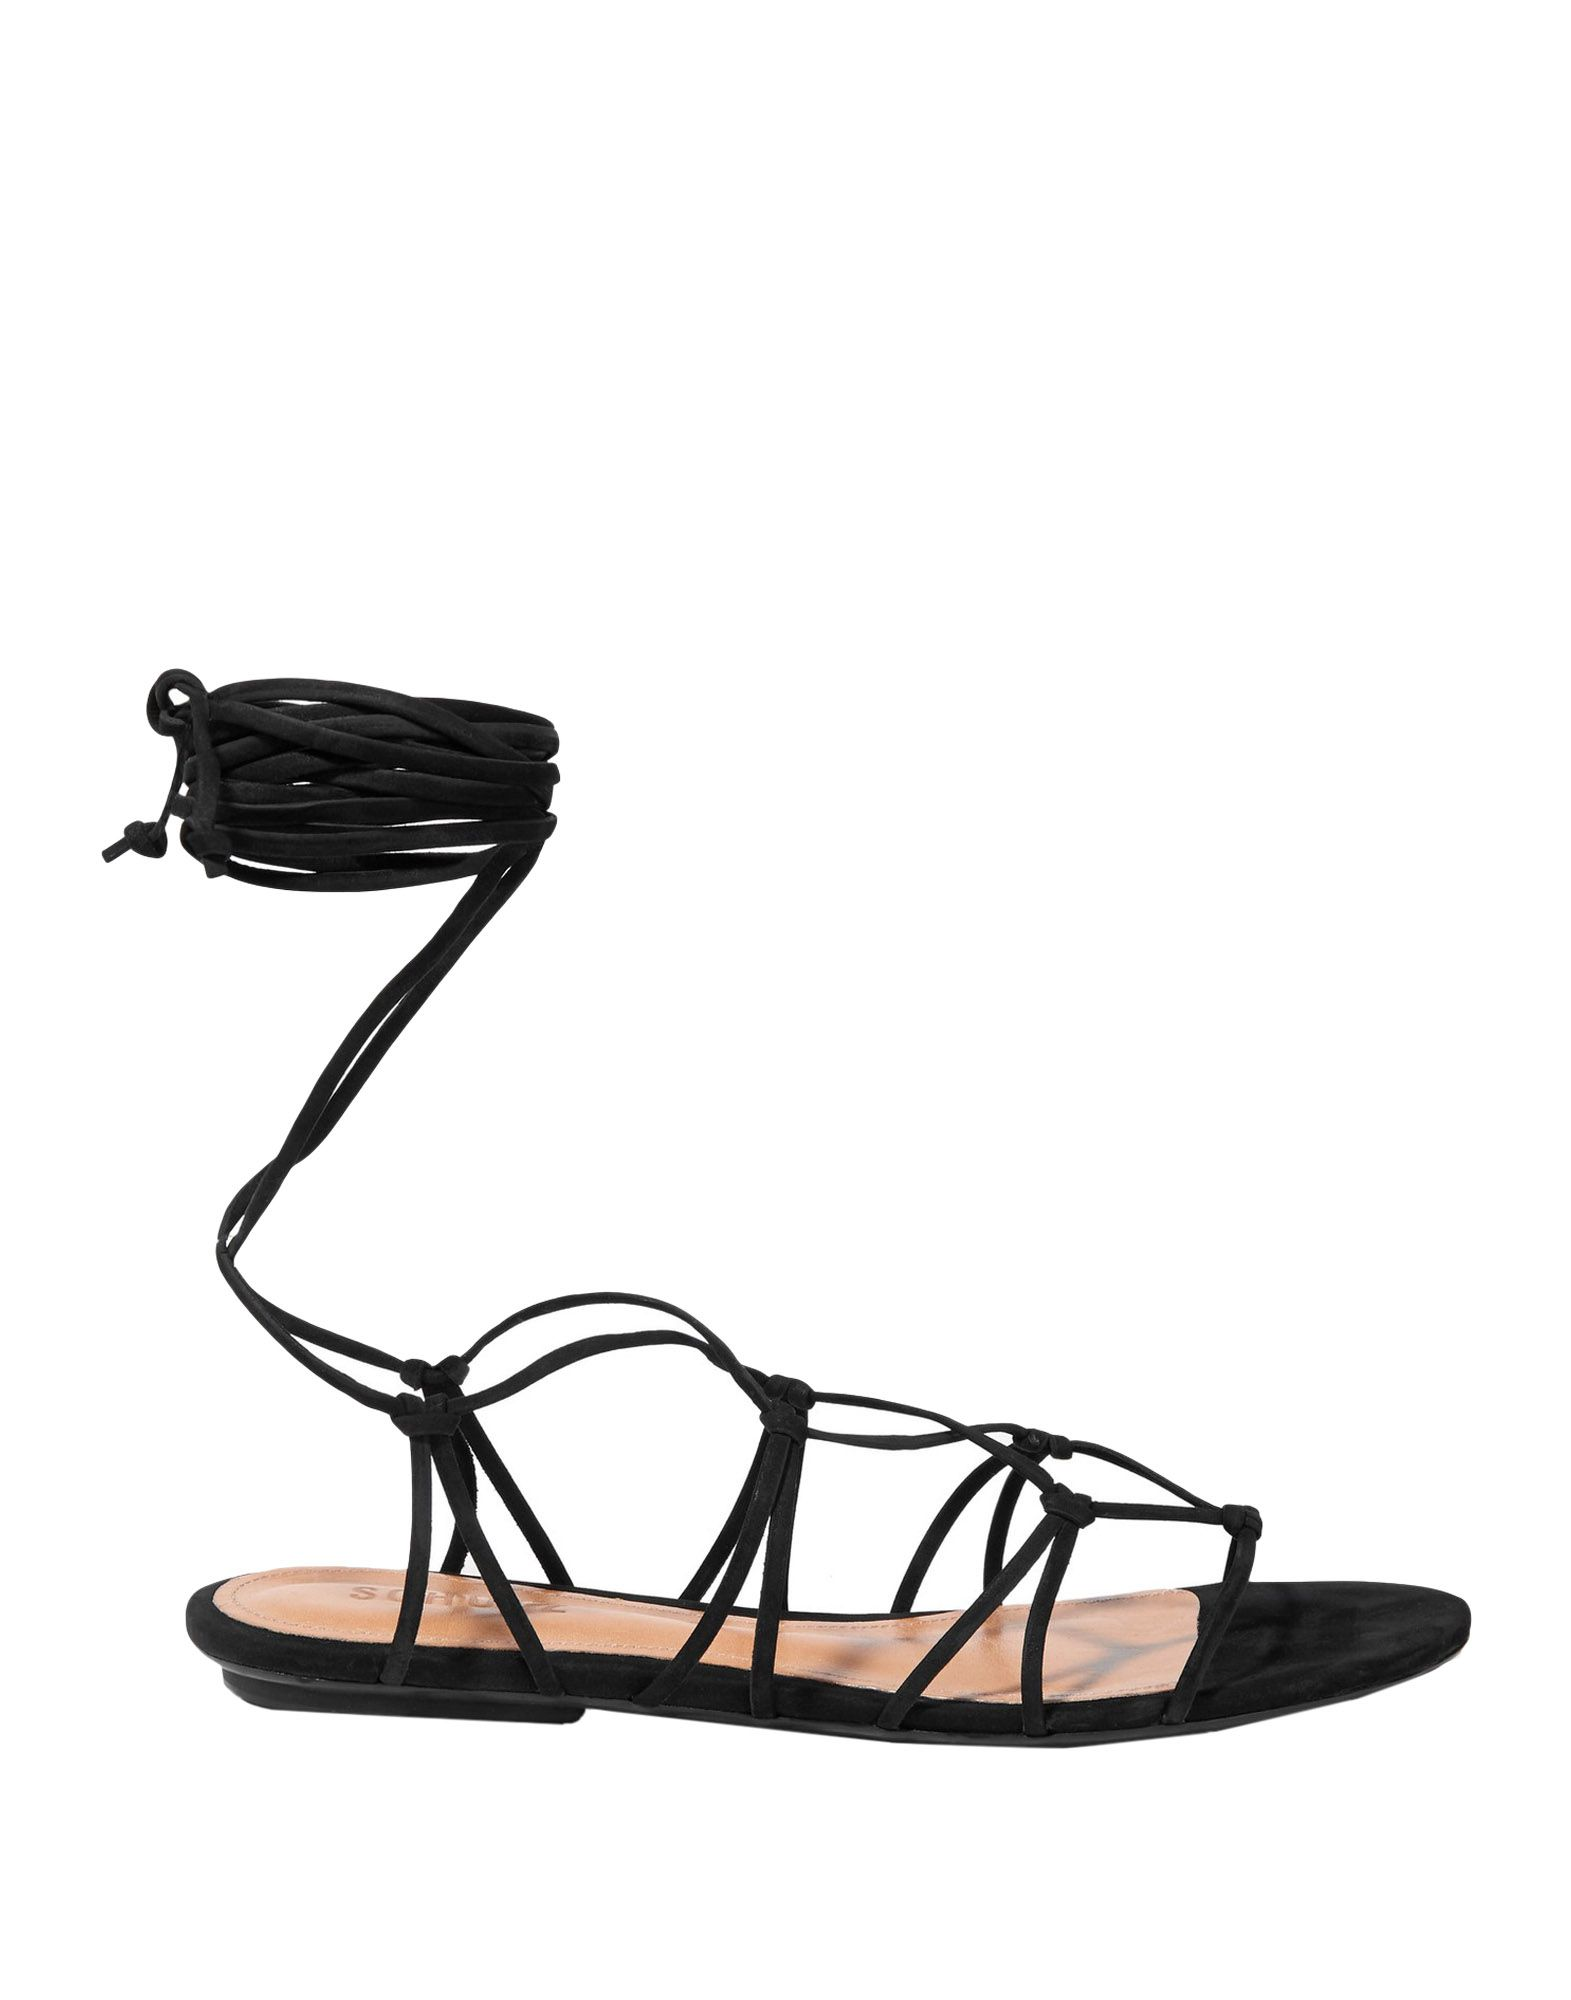 Schutz Sandals - Women Schutz Sandals online - on  United Kingdom - online 11541274WL a9e633